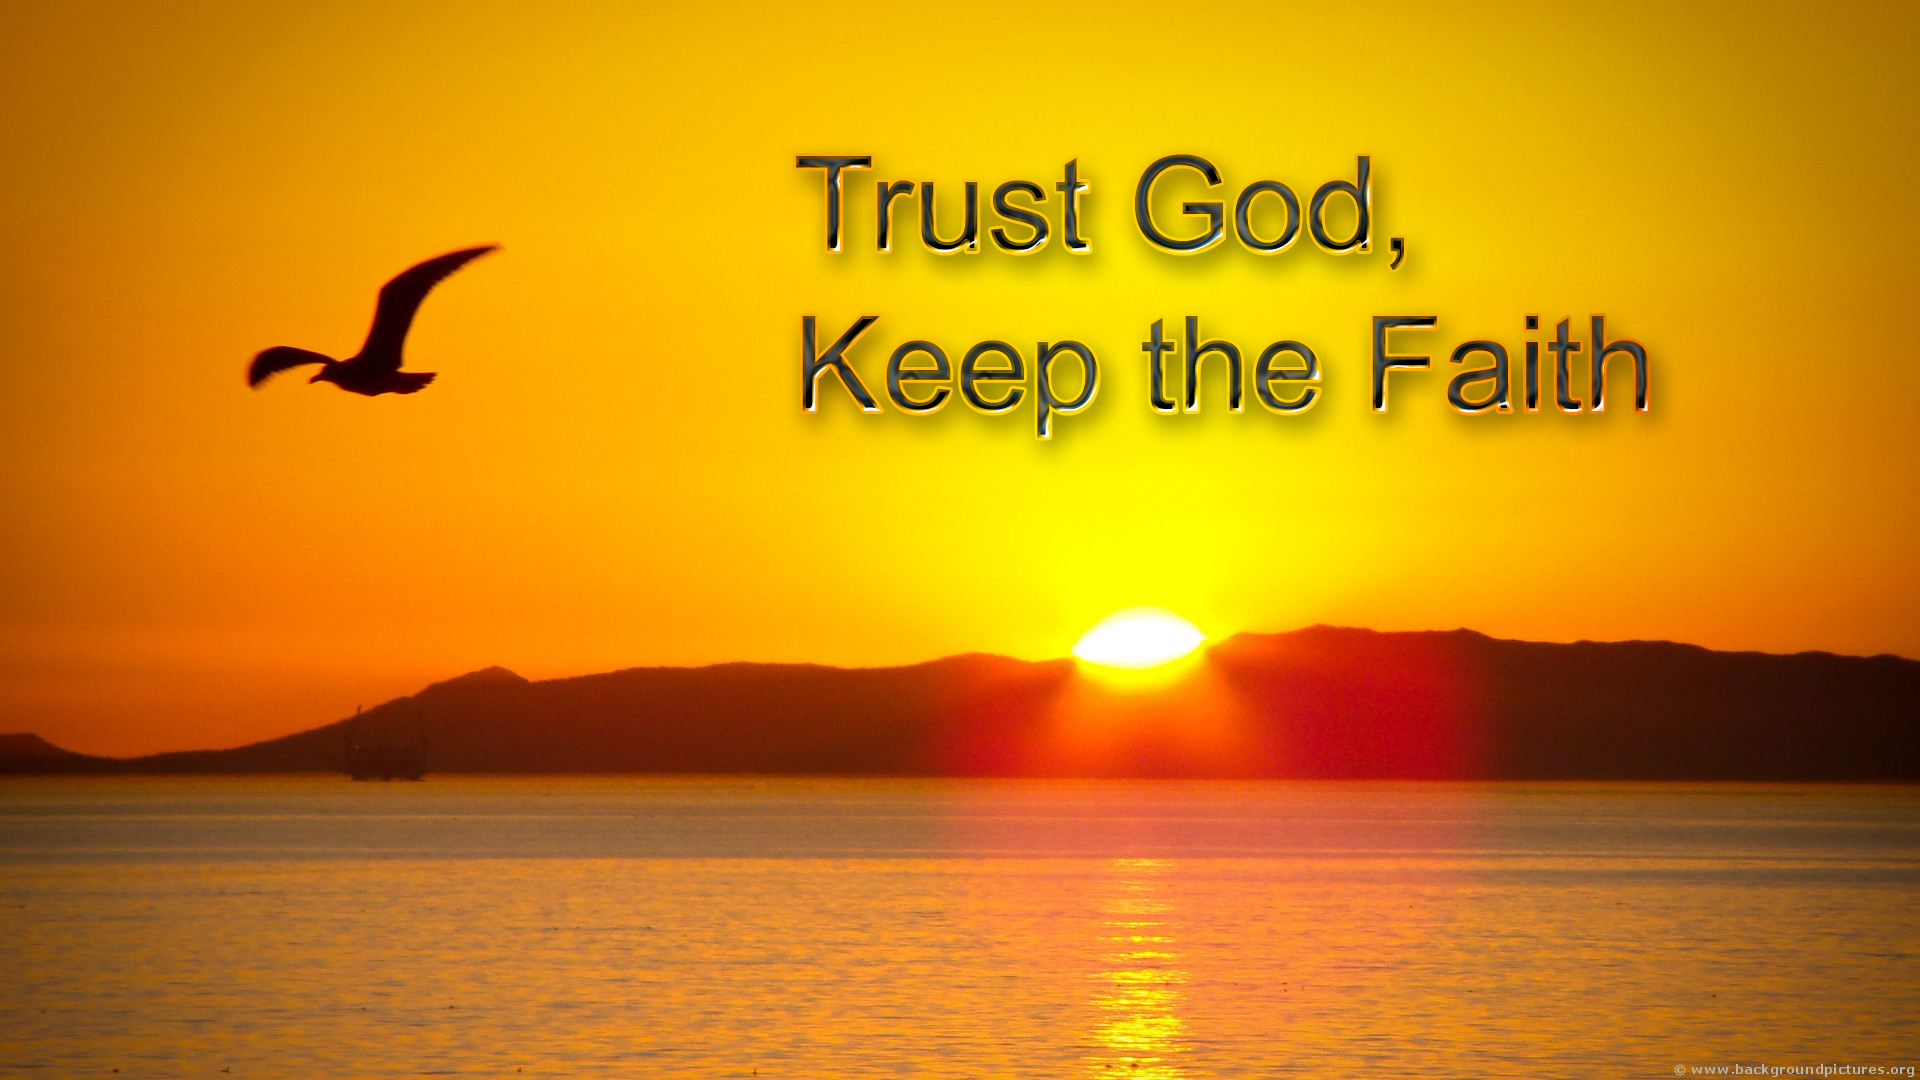 Trust God with All Your Heart